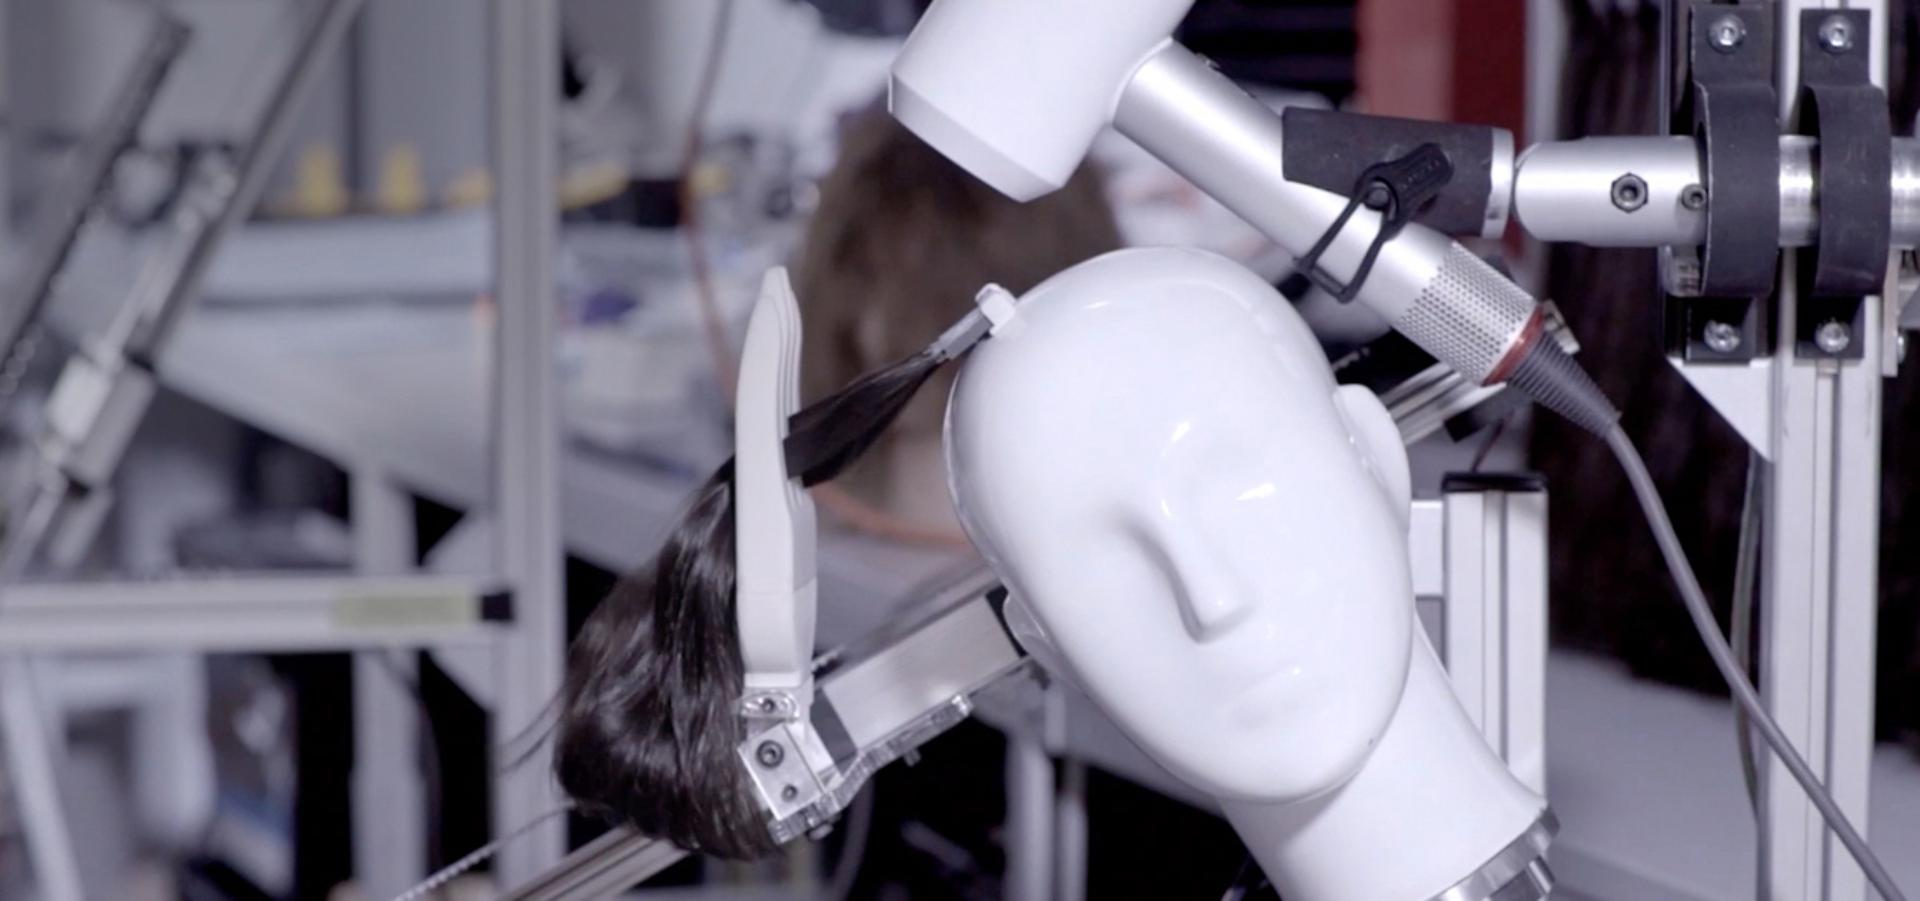 Mannequin head being tested on with the Dyson supersonic hairdryer.